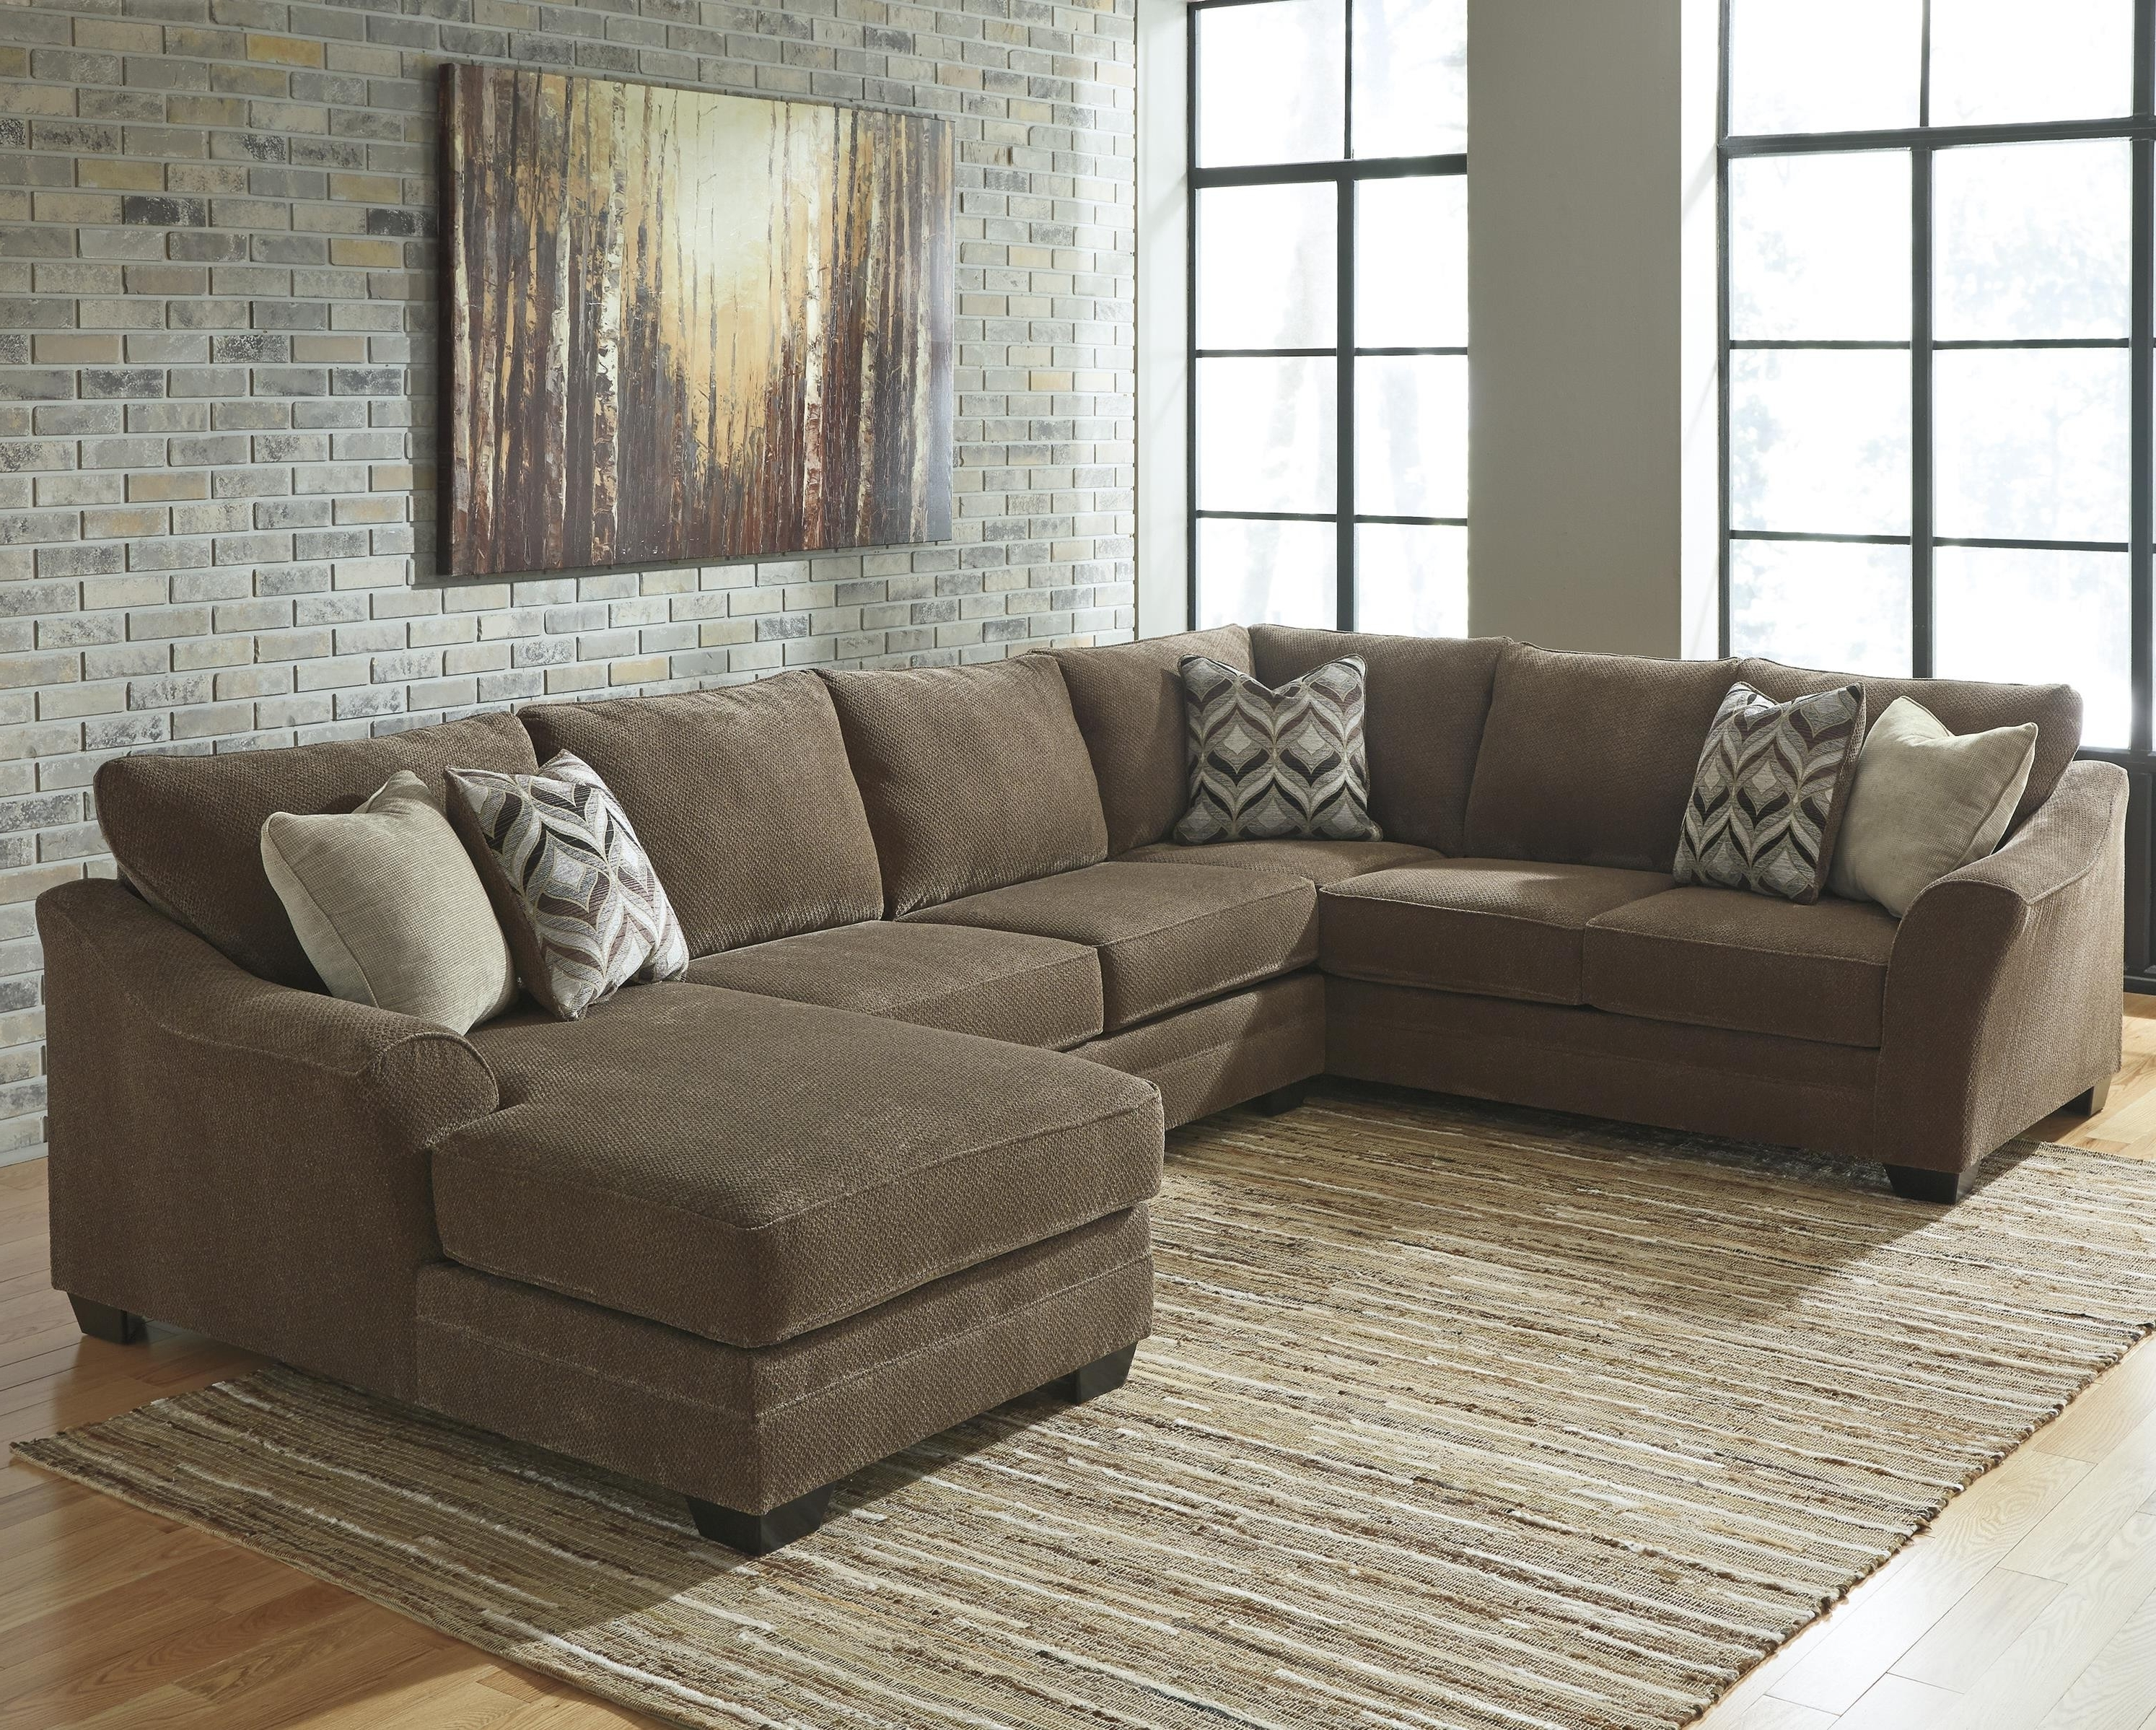 Widely Used Sofa Cheap Sectional Sofas Fabric Sectional Vaughn Apartment Inspirational  Vaughn Sectional Sofa 5Pc Dimensions Of Vaughn Sectional Sofa  5Pc Dimensions In Vaughan Sectional Sofas (View 15 of 15)